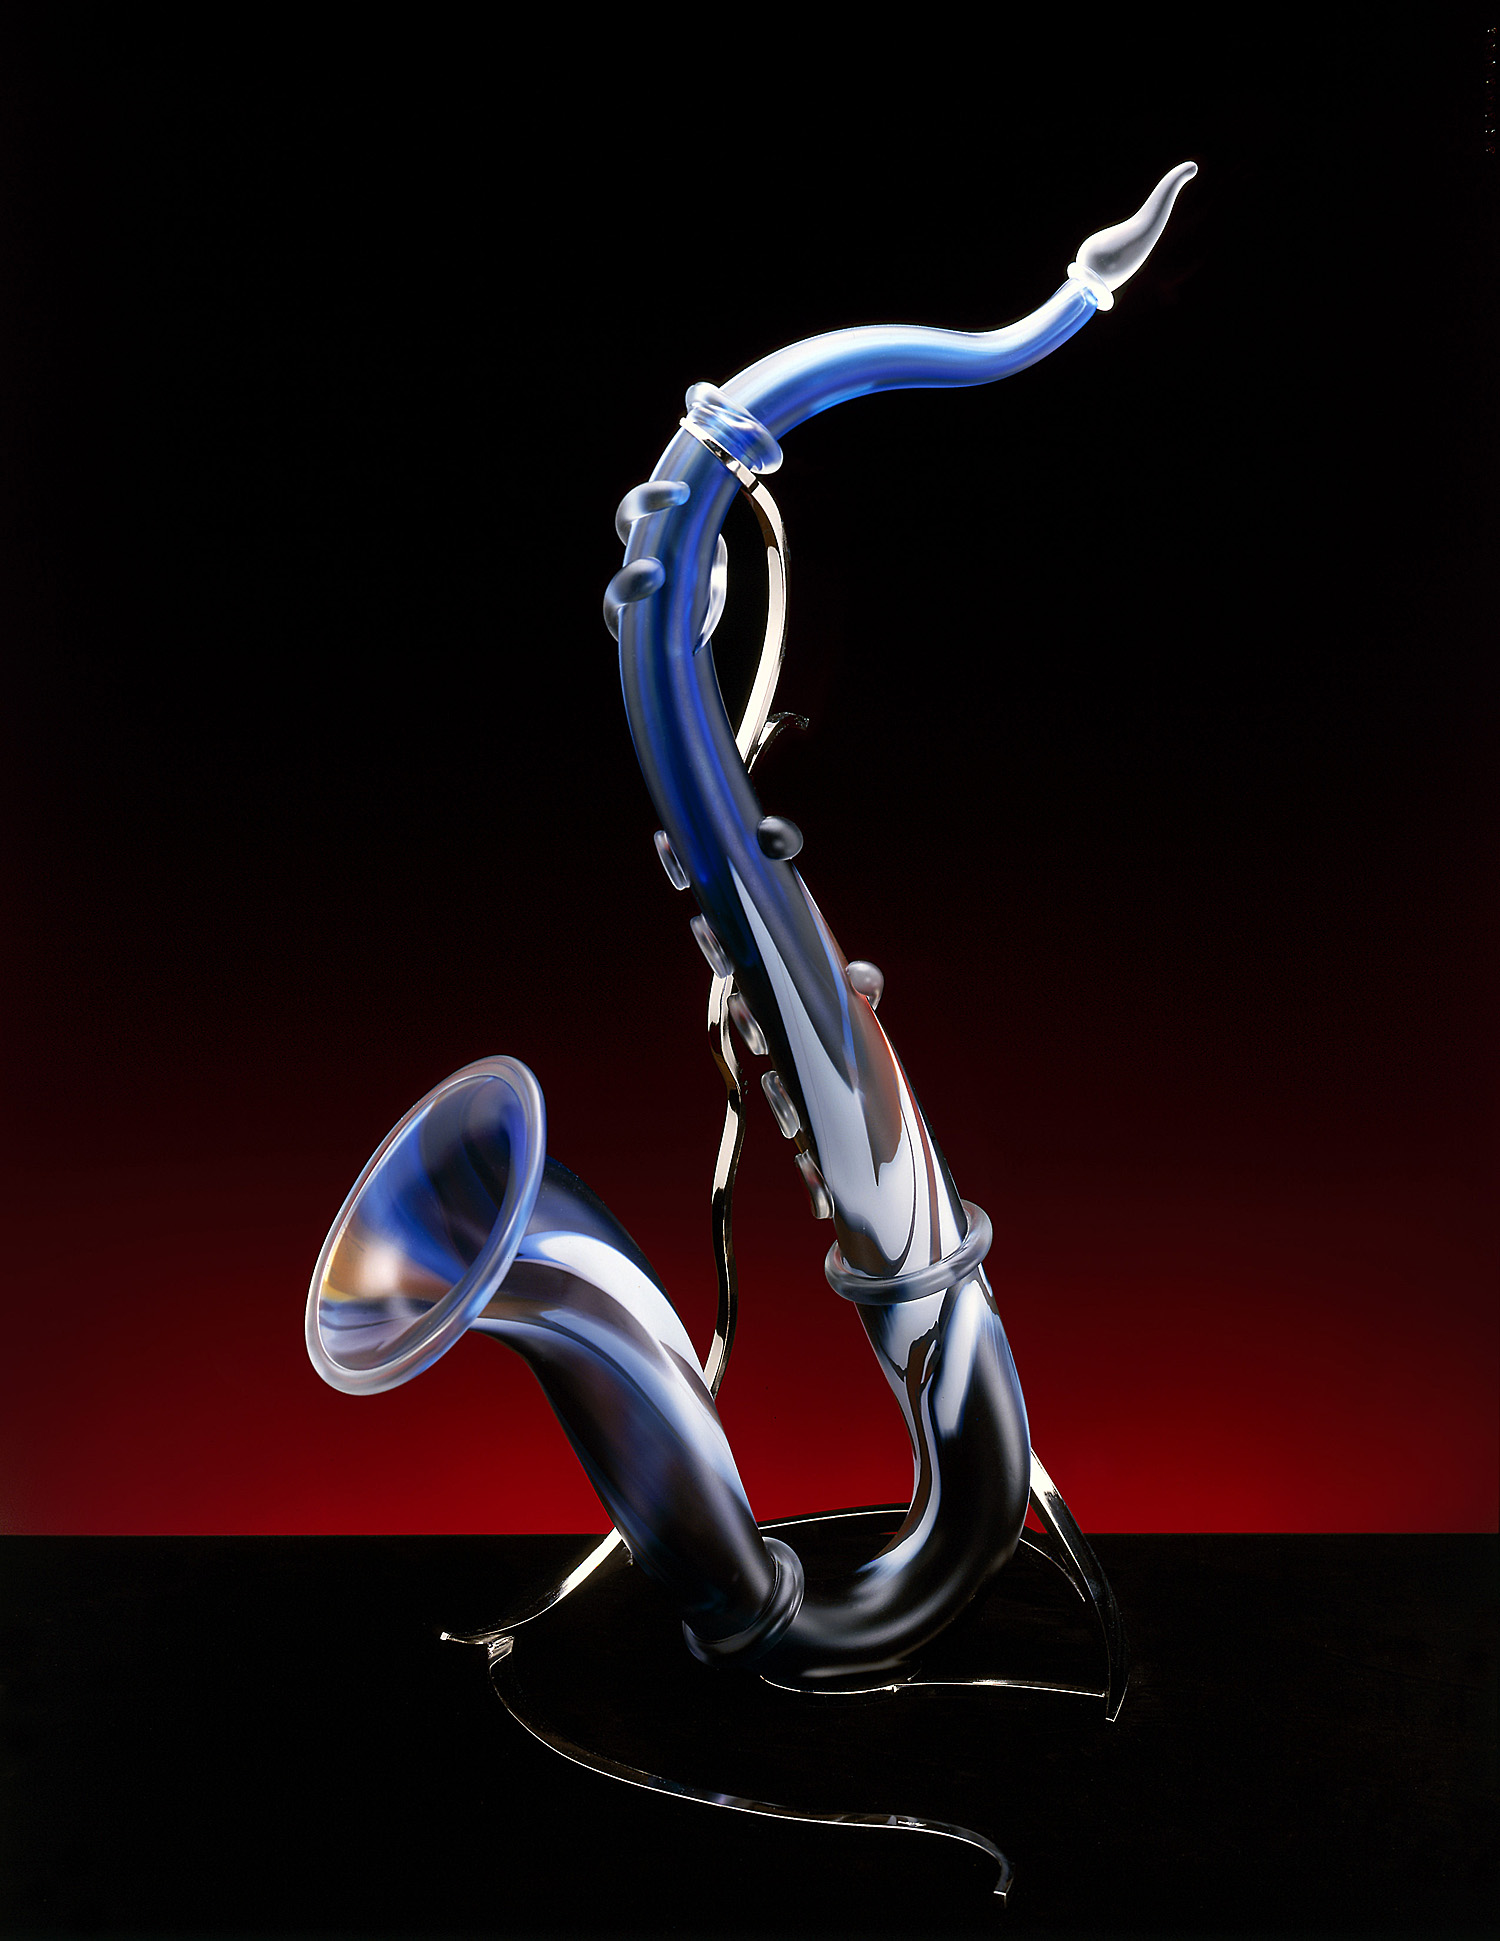 Synthesis   2002. Blown glass, glass details, nickel-plated bronze. 28 x 13 x 20""